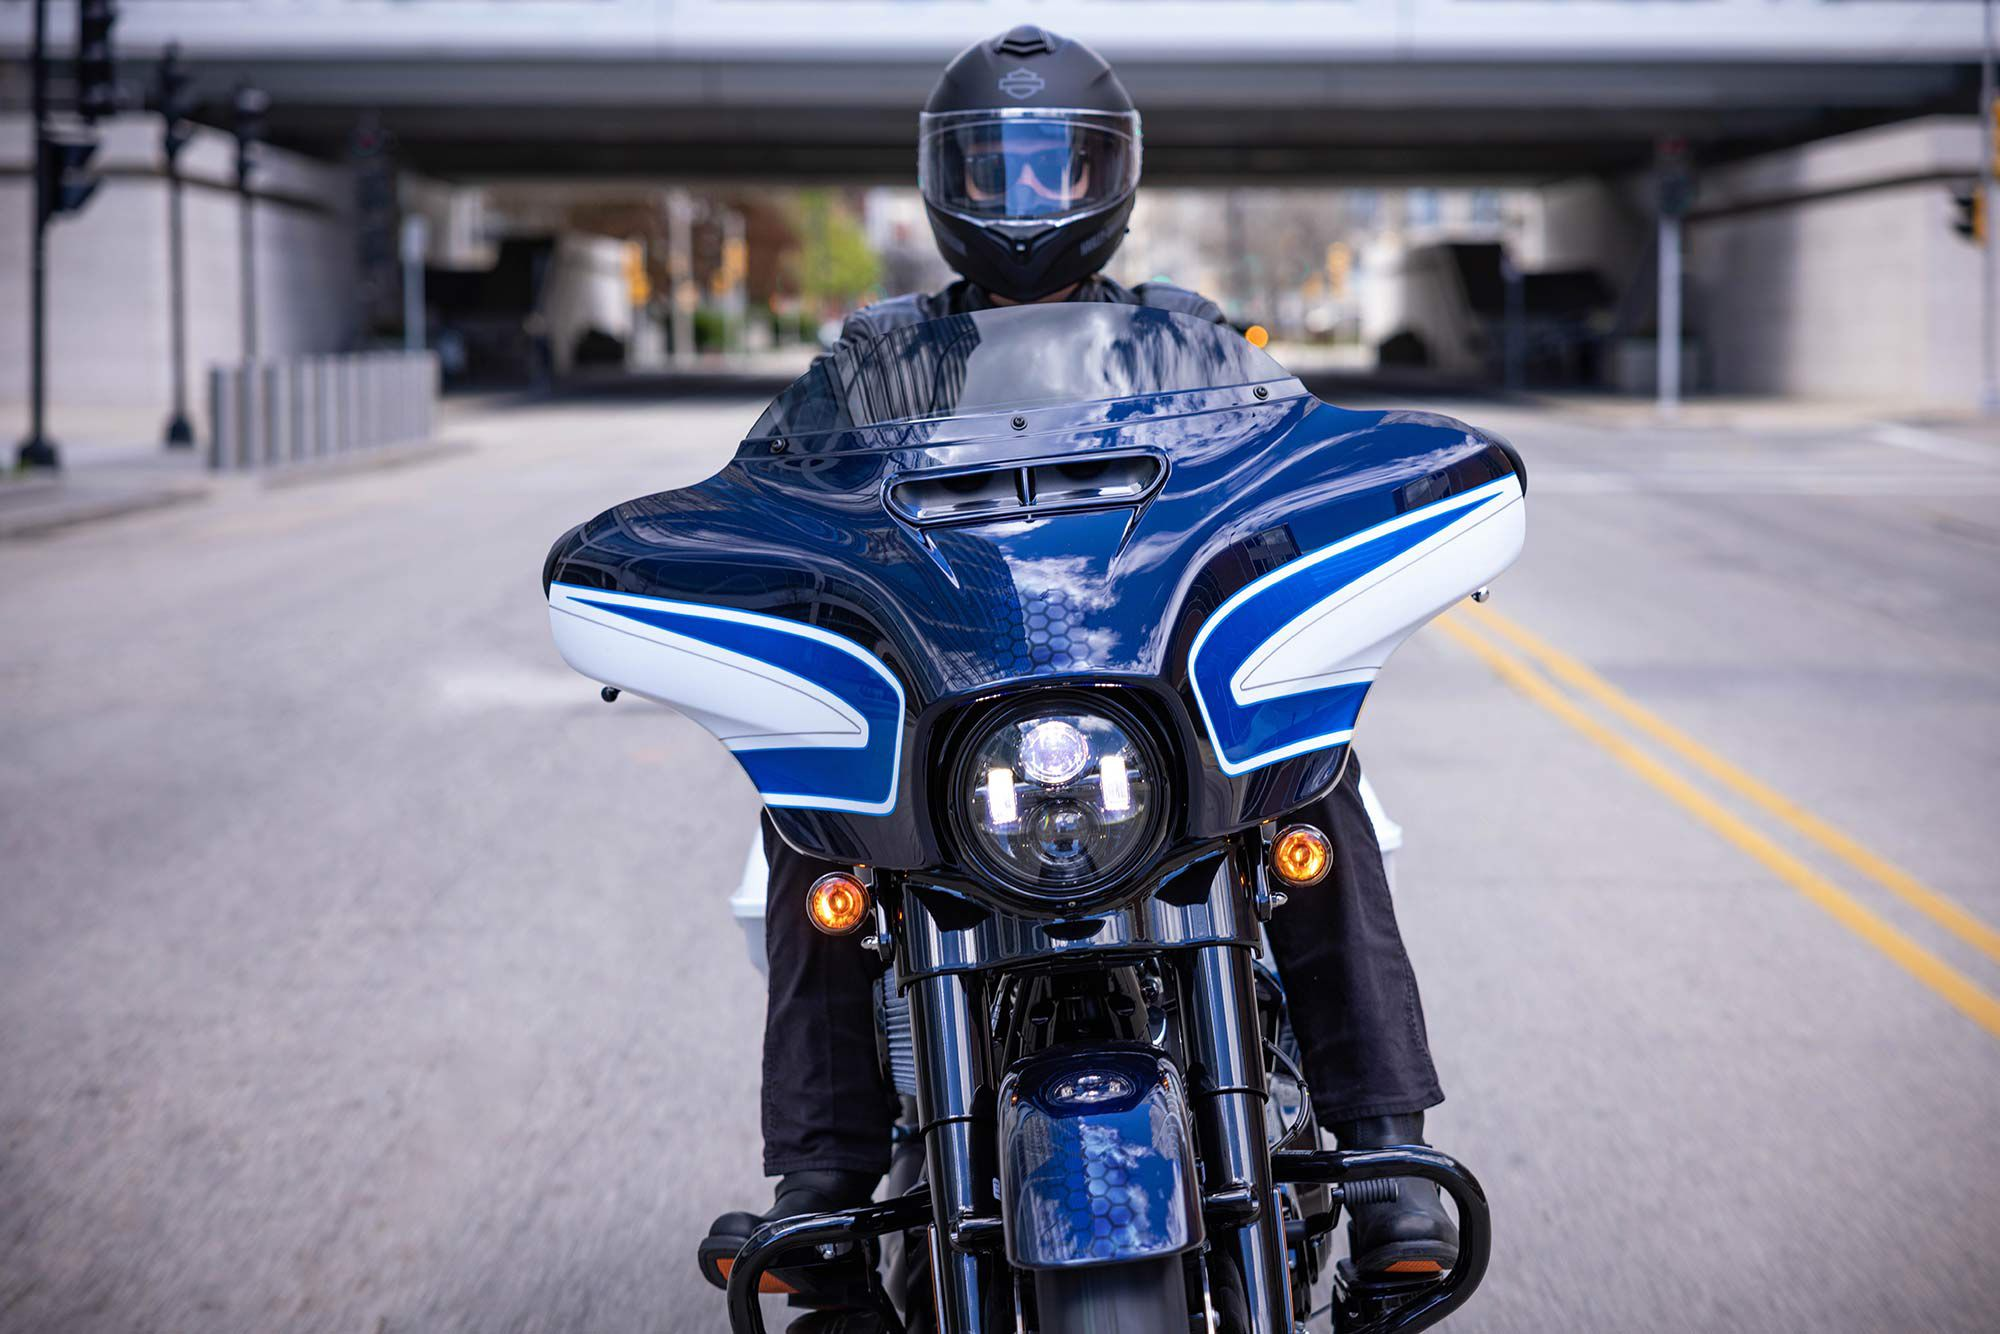 Arctic Blast paint adds an exclusive and custom flair to the already-tricked-out 2021 Street Glide Special model.